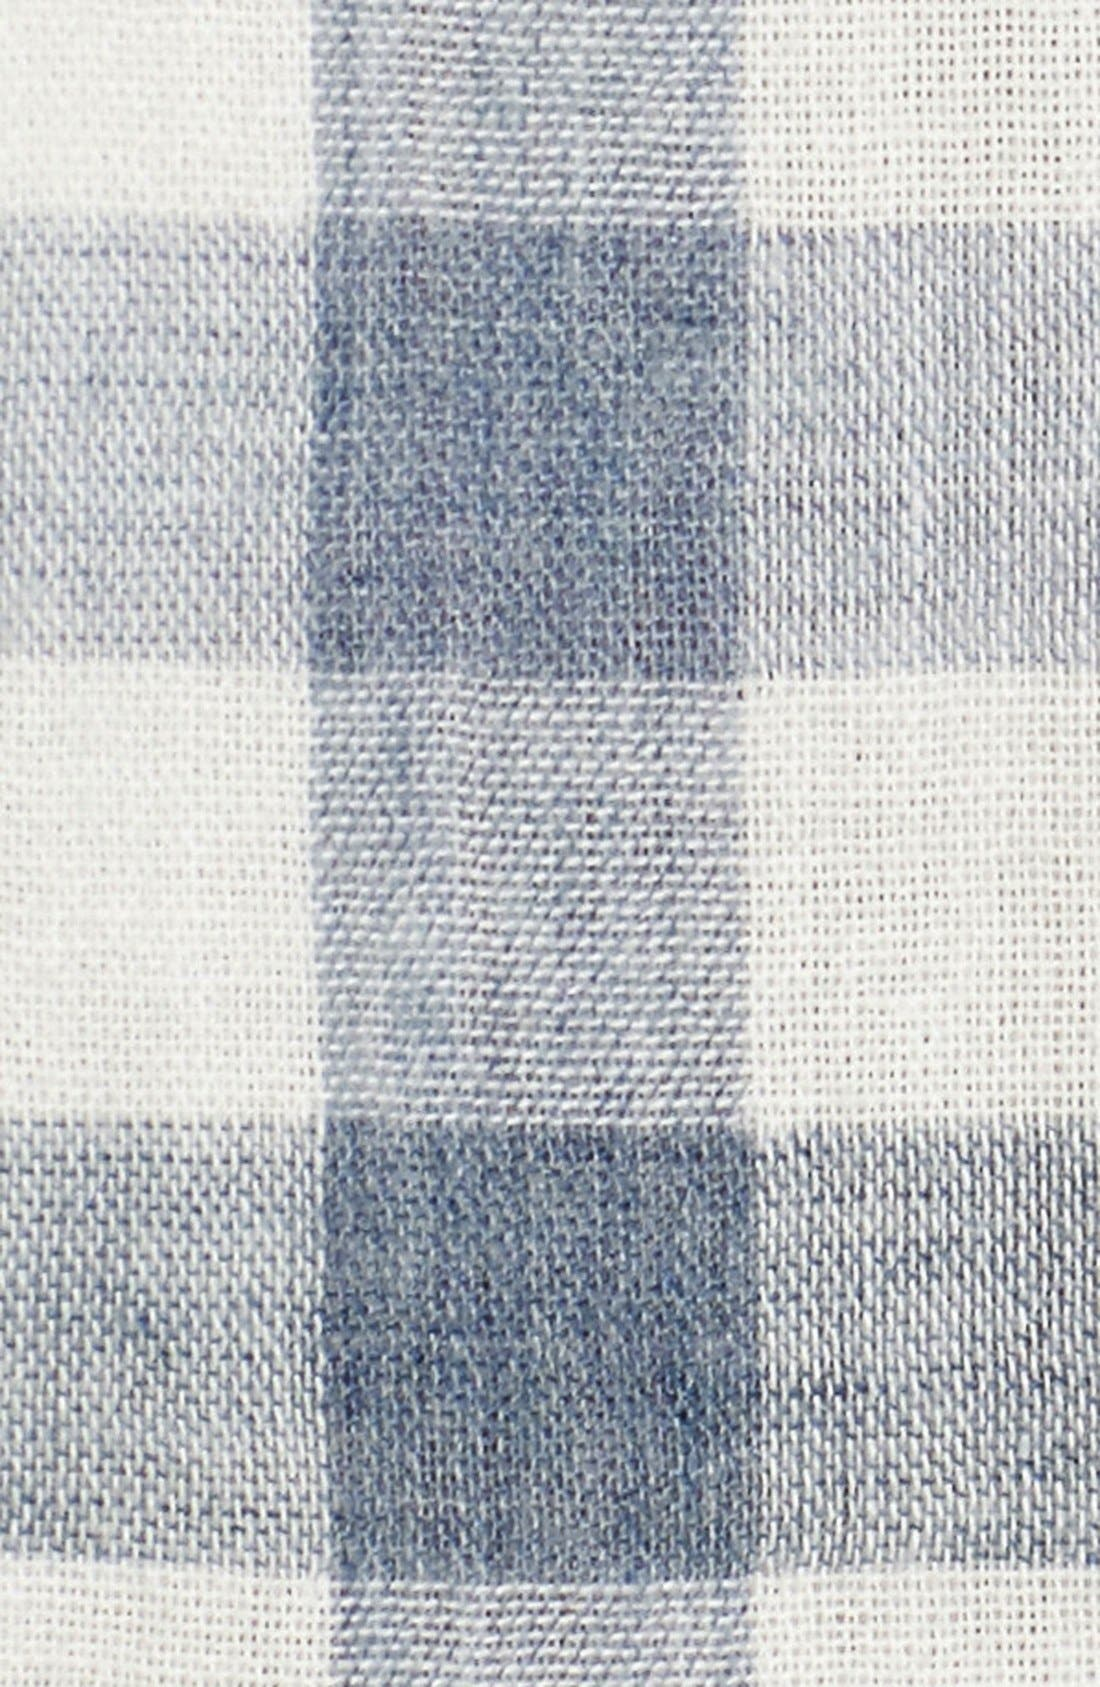 'Denby' Trim Fit Double Woven Sport Shirt,                             Alternate thumbnail 5, color,                             Heather Blue/ Cream Gingham